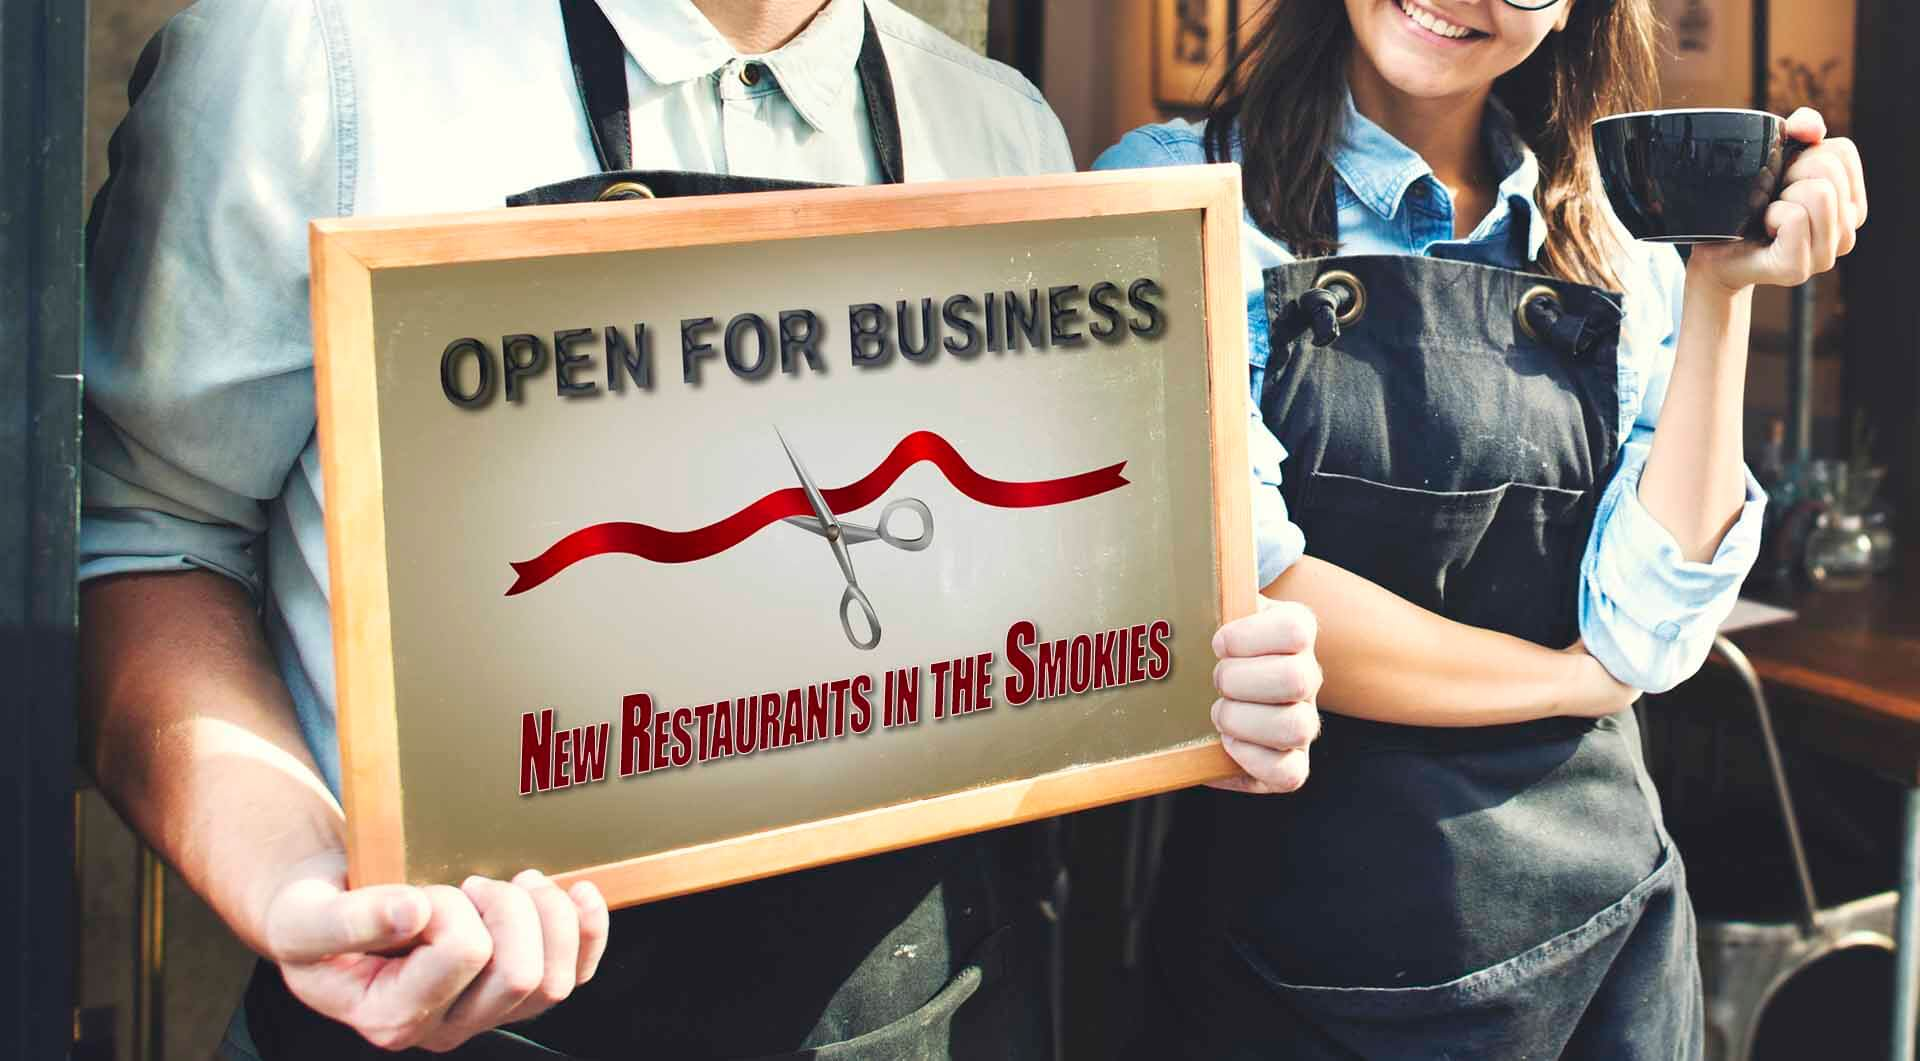 New-Restaurants-in-the-Smokies.-JPG.jpg